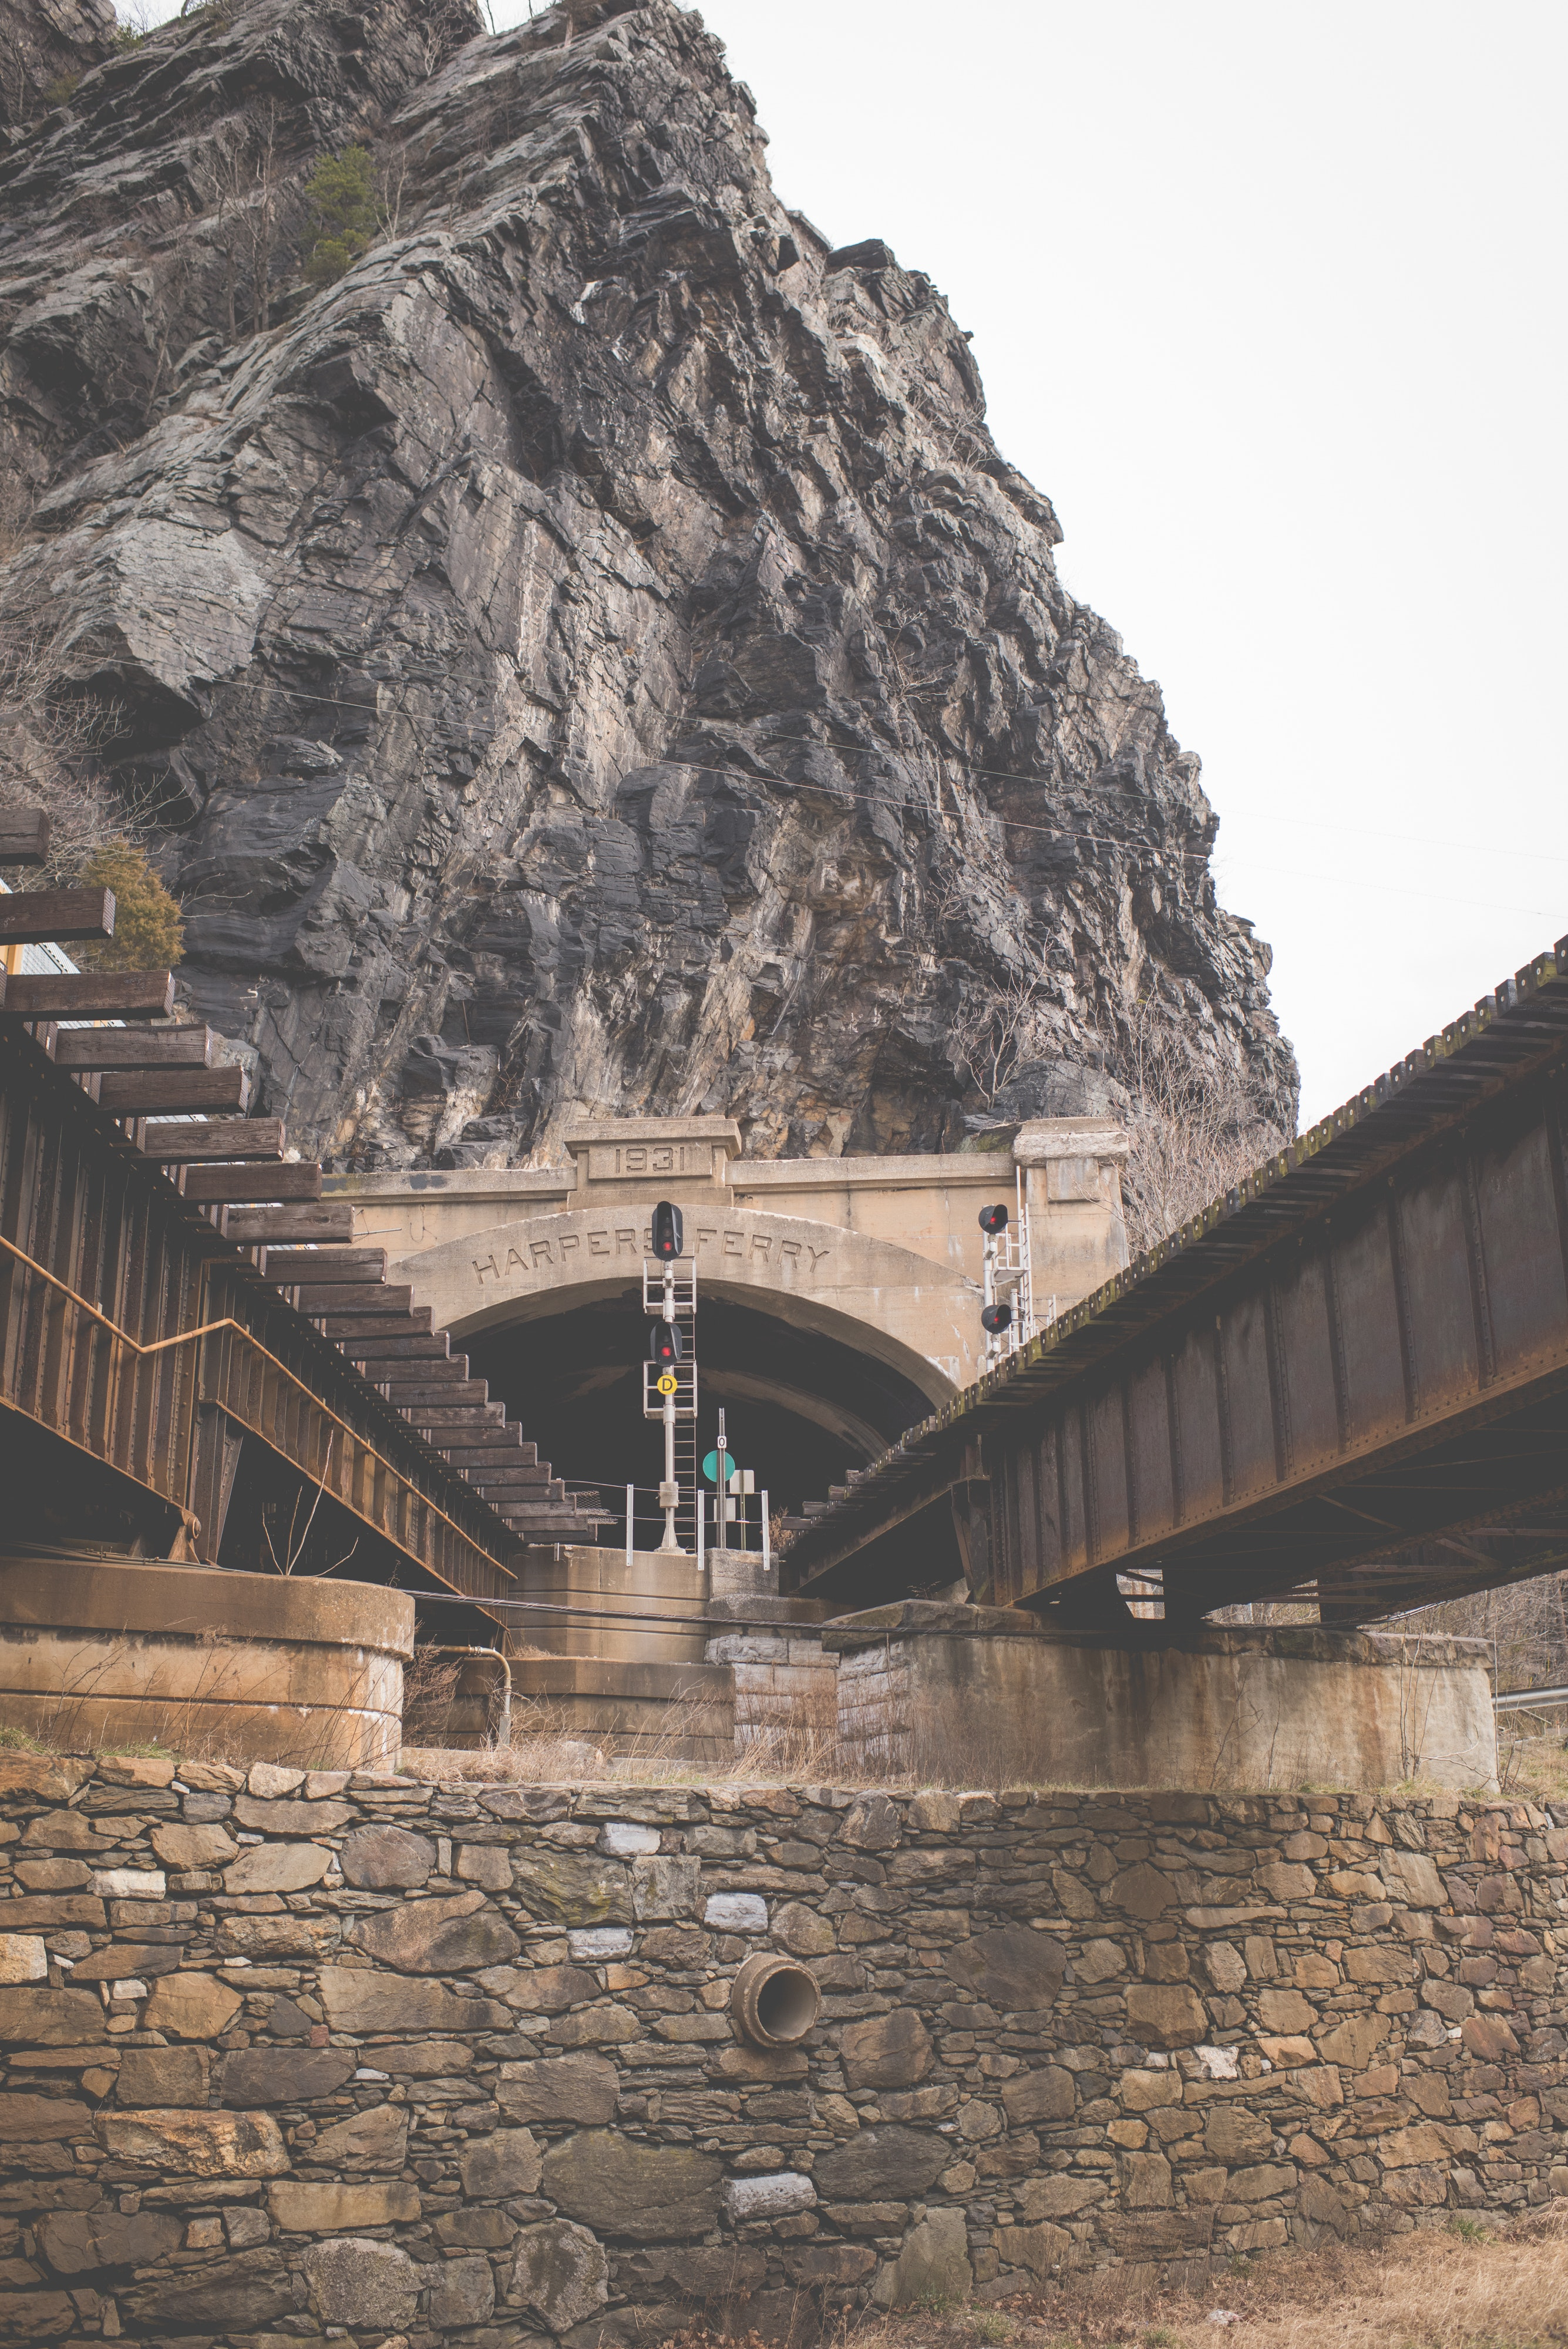 View of steps leading towards mountain photo